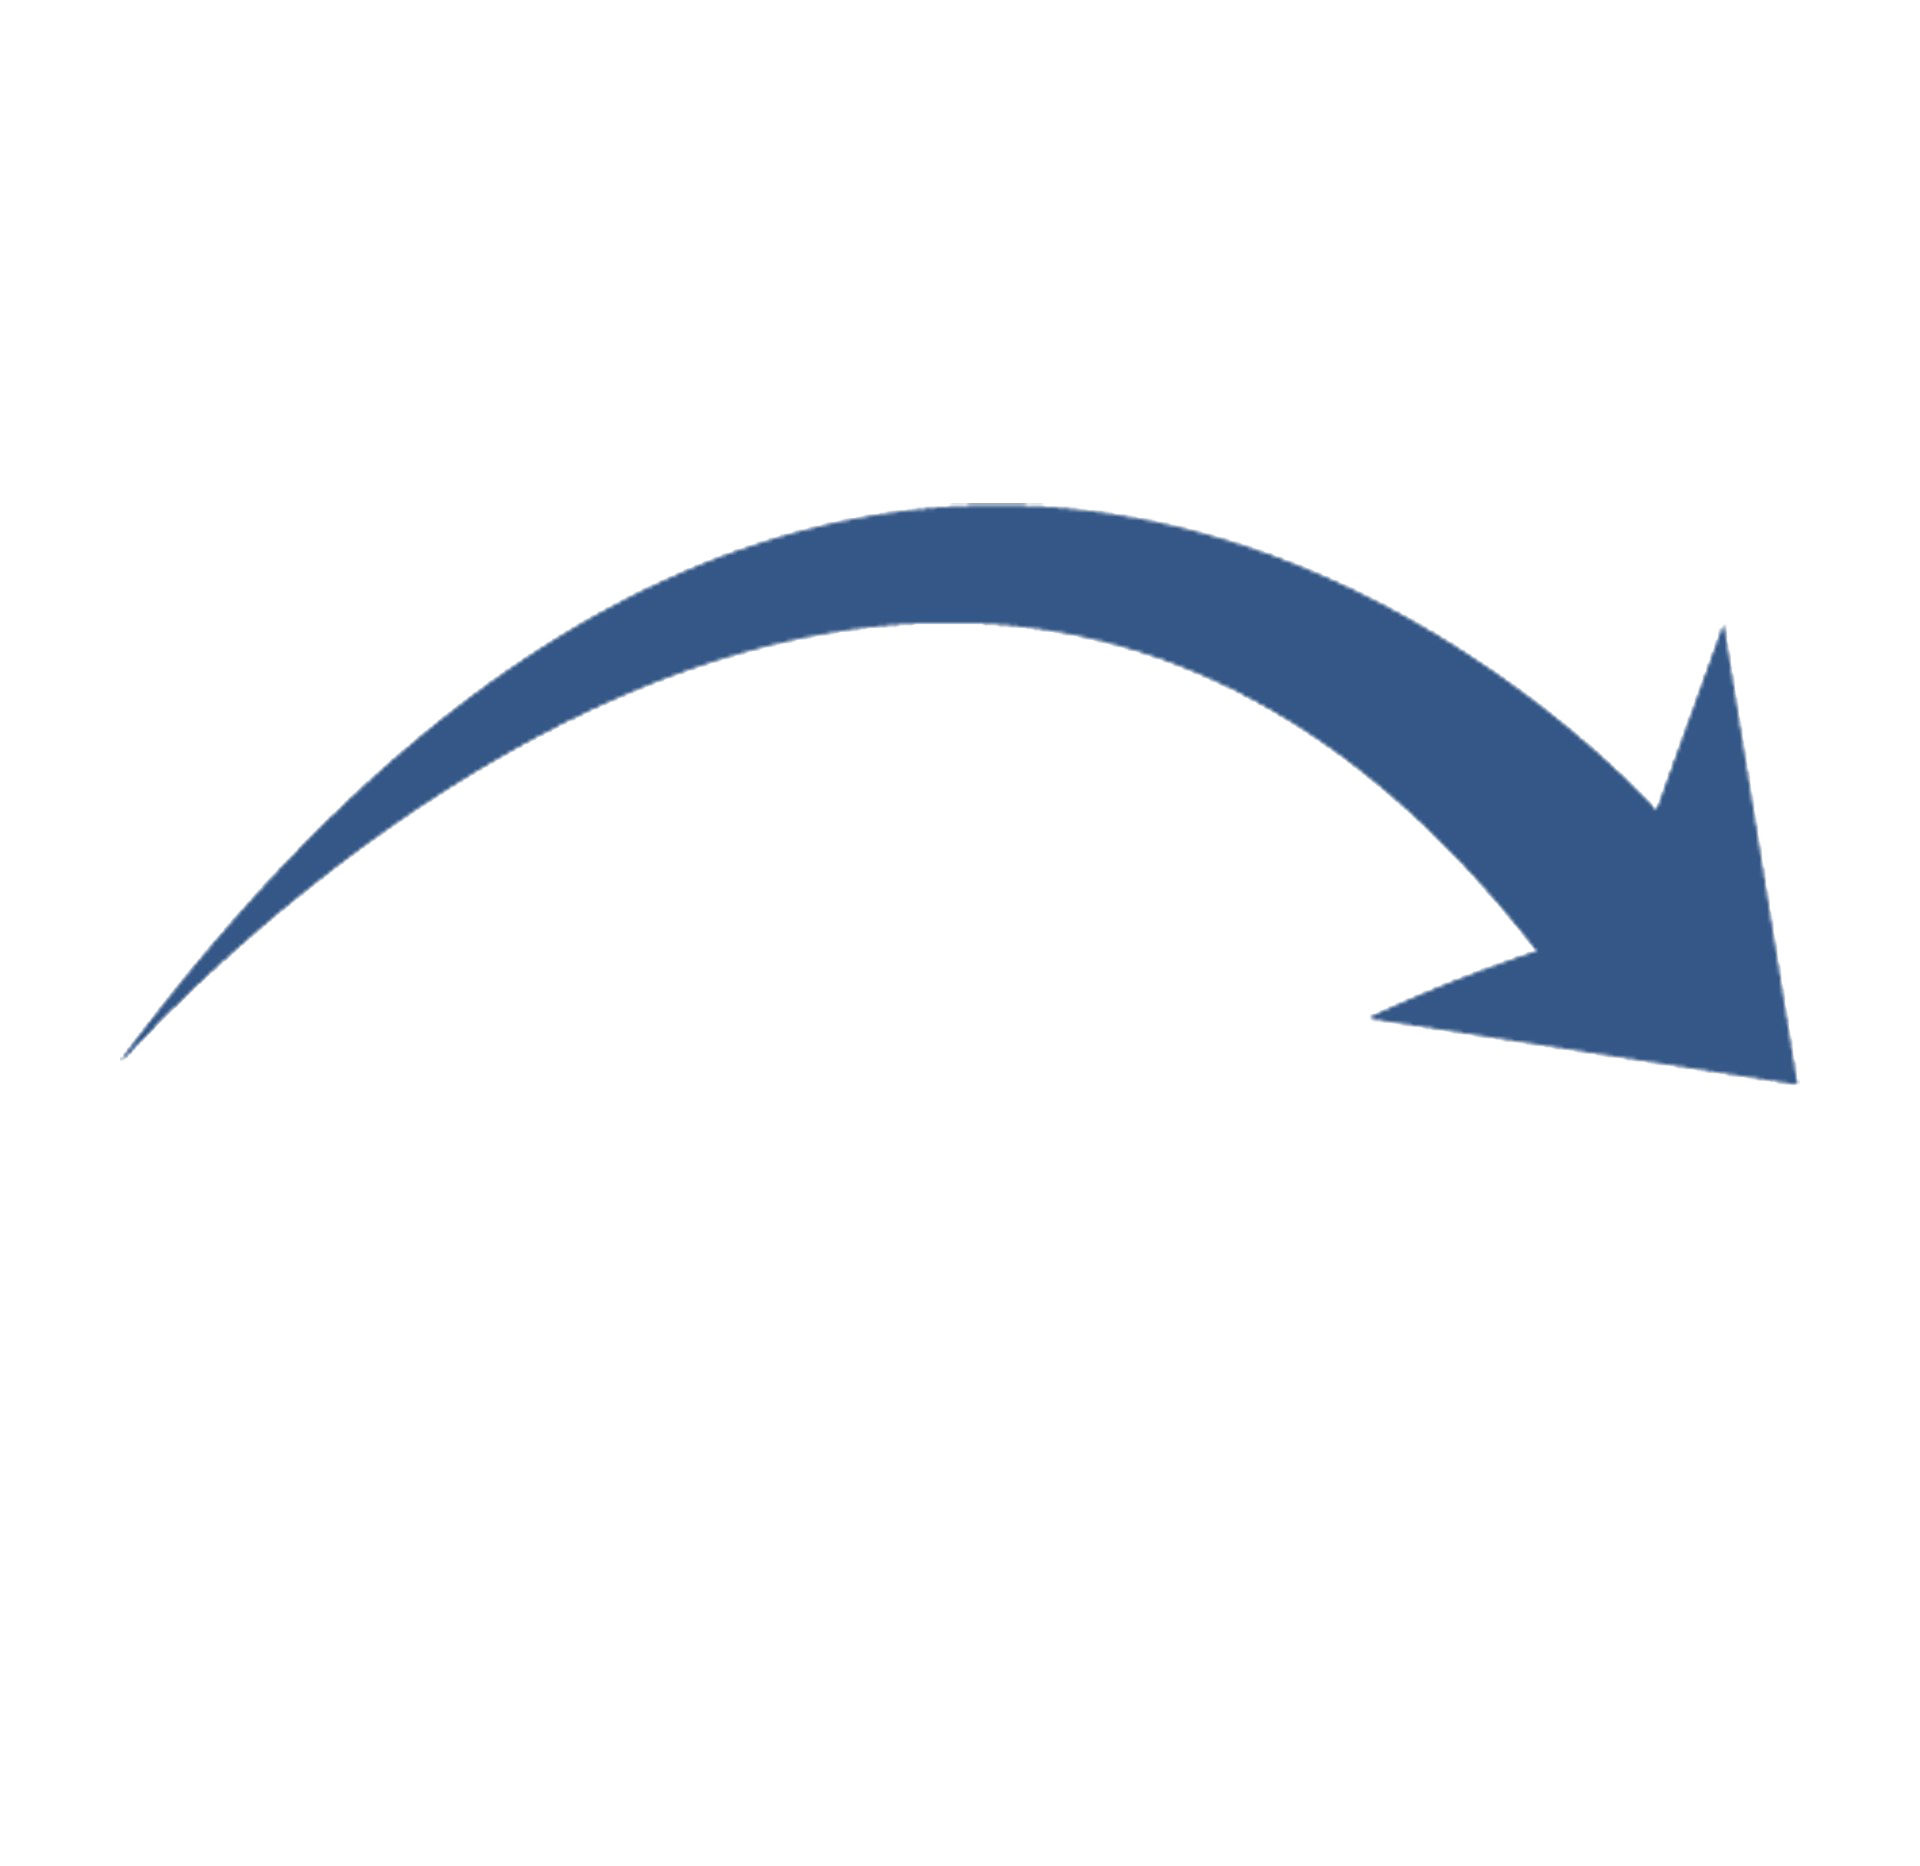 Curved Arrow Png & Free Curved Arrow png Transparent Images